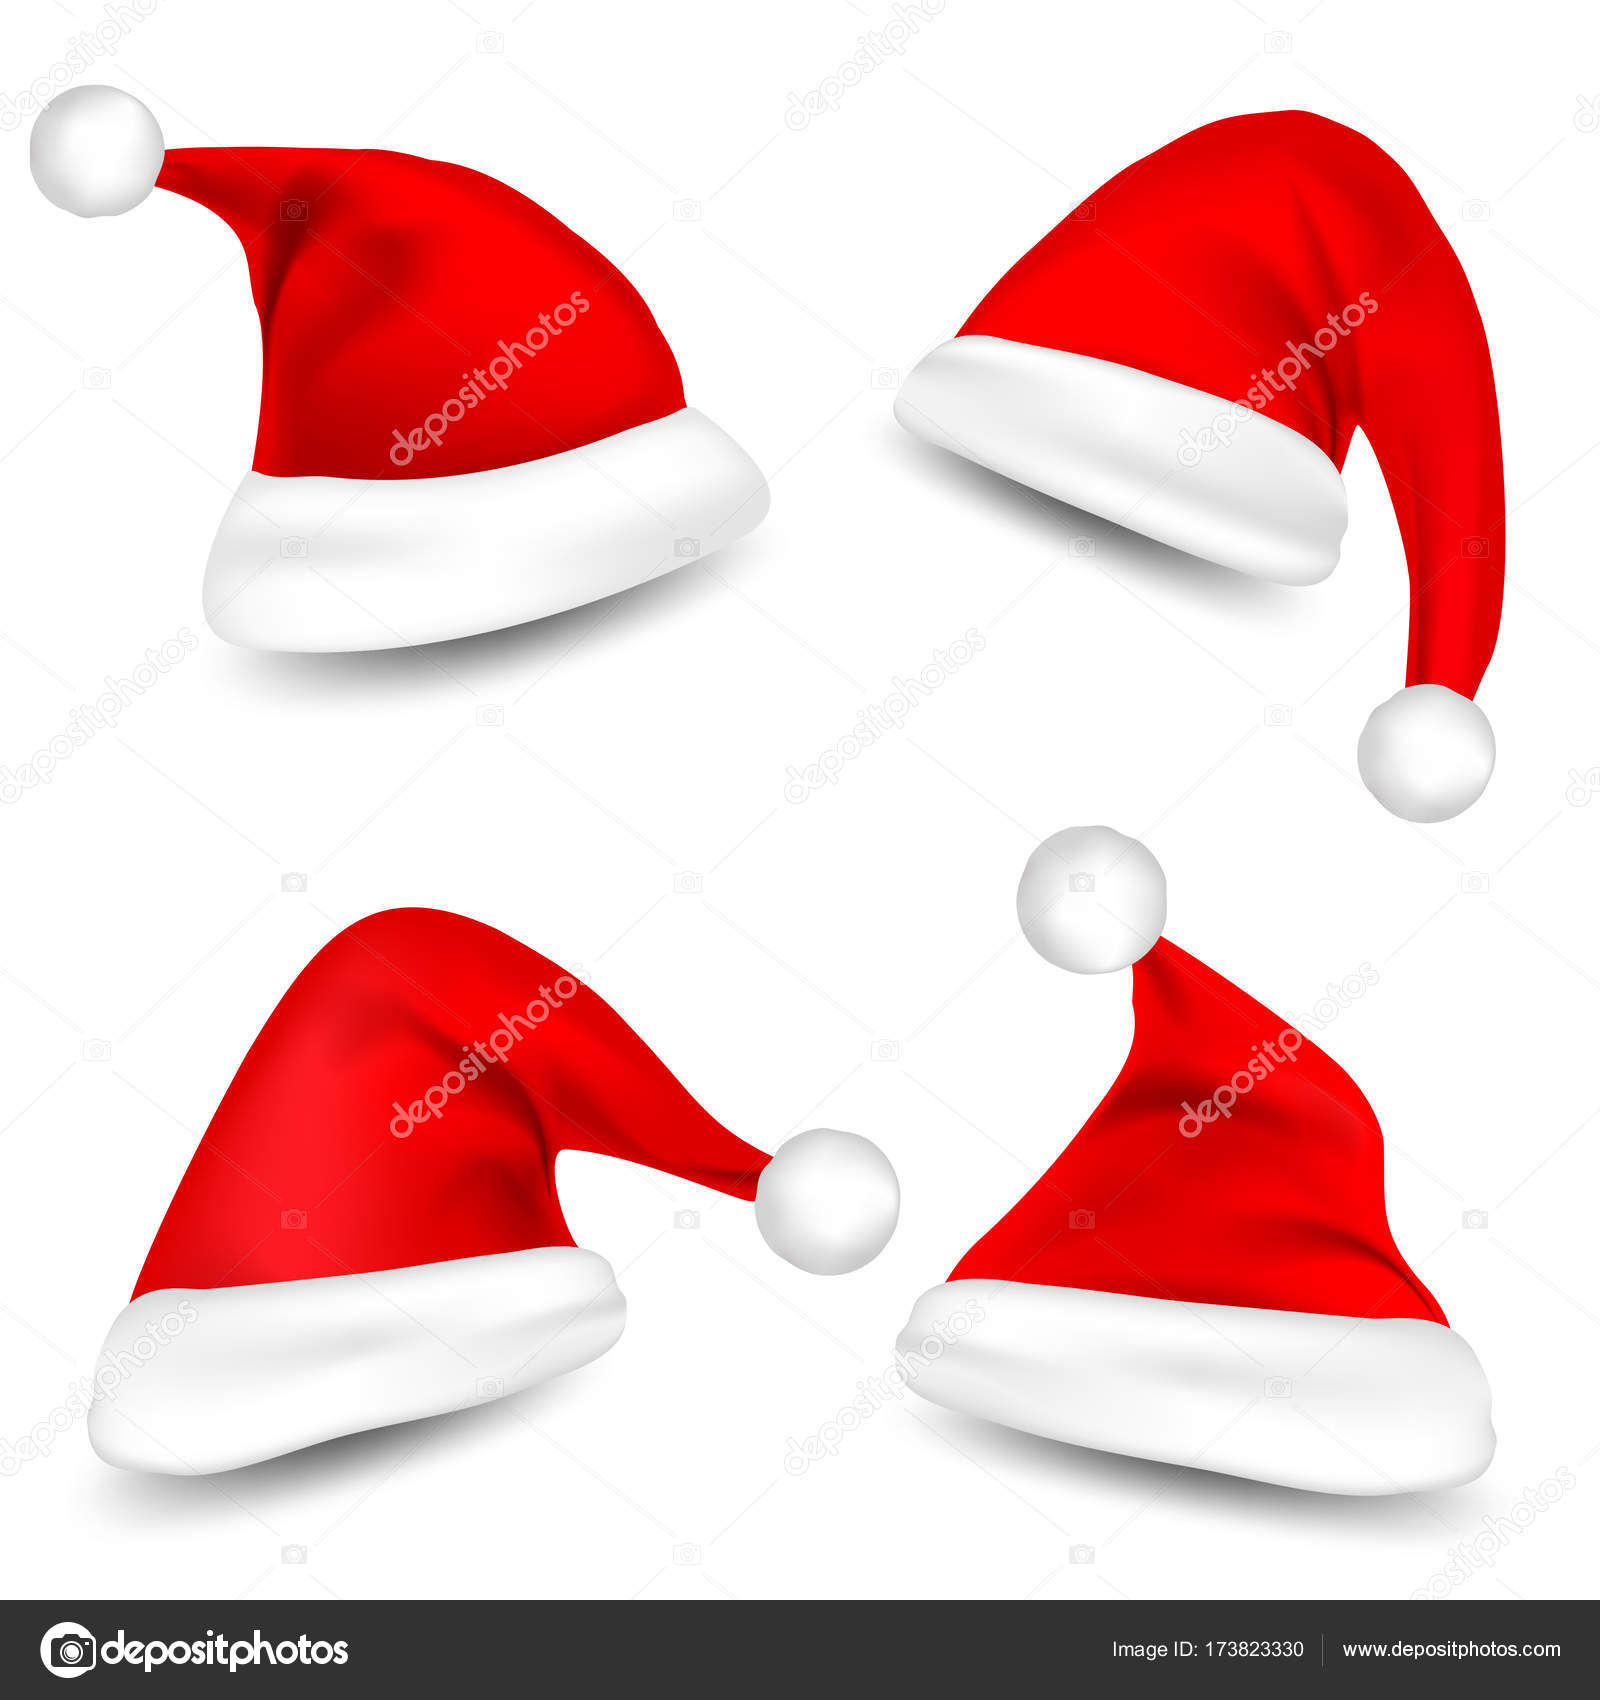 Christmas Santa Claus Hats With Shadow Set. New Year Red Hat Isolated on White  Background. Vector illustration.– stock illustration a7121255d183